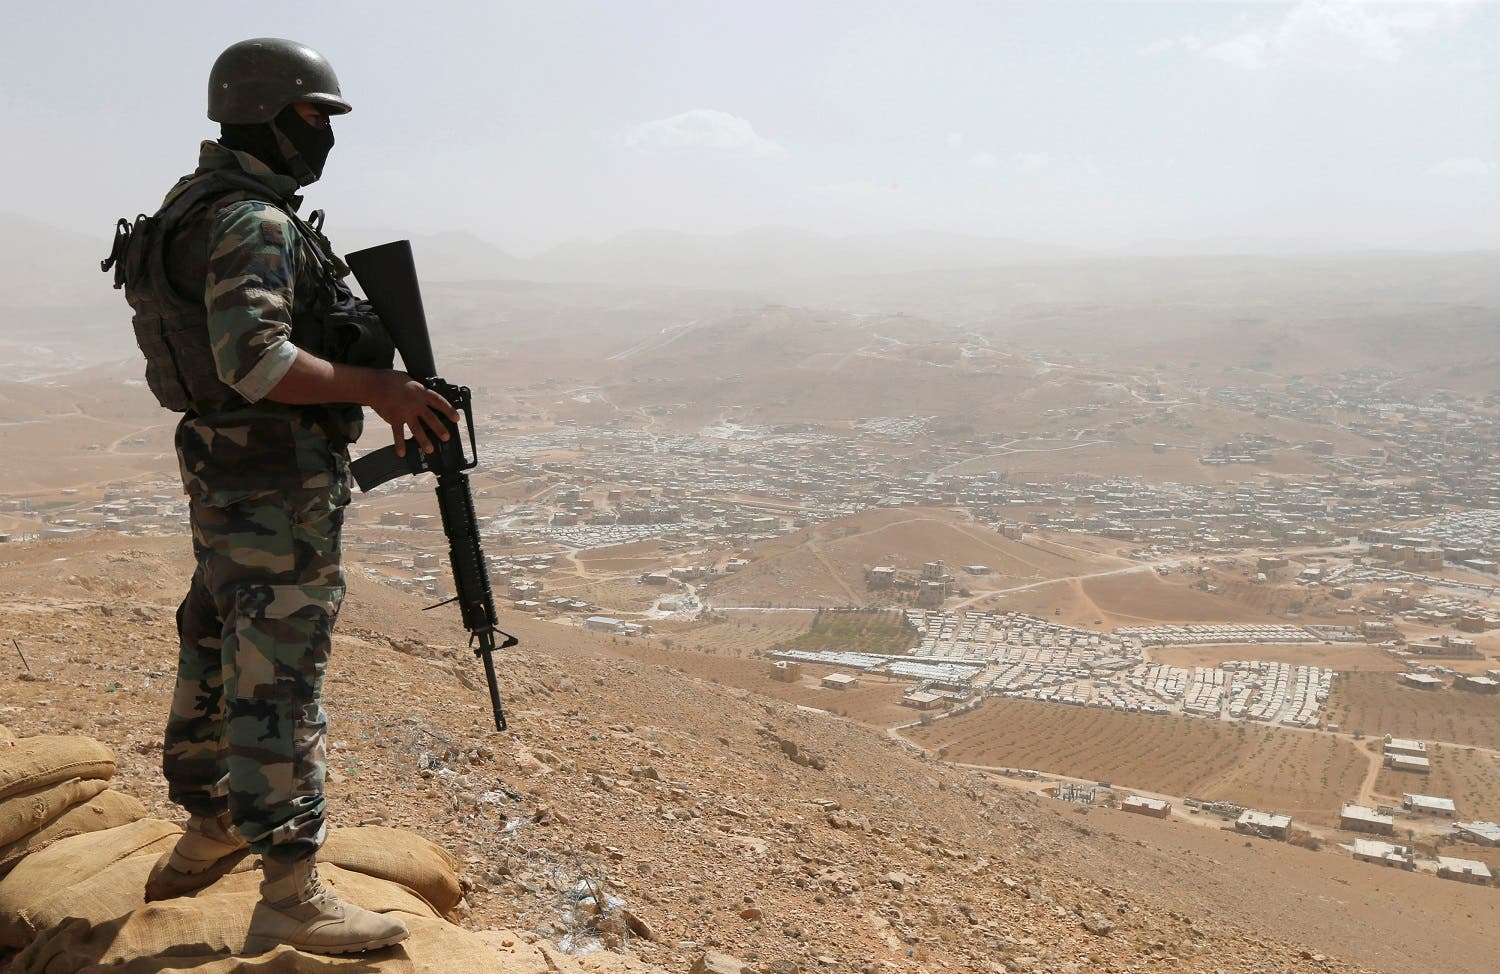 A Lebanese soldier carries his weapon as he stands on sandbags at an army post in the hills above the Lebanese town of Arsal, near the border with Syria, Lebanon September 21, 2016. Picture taken September 21, 2016. REUTERS/Mohamed Azakir TPX IMAGES OF THE DAY